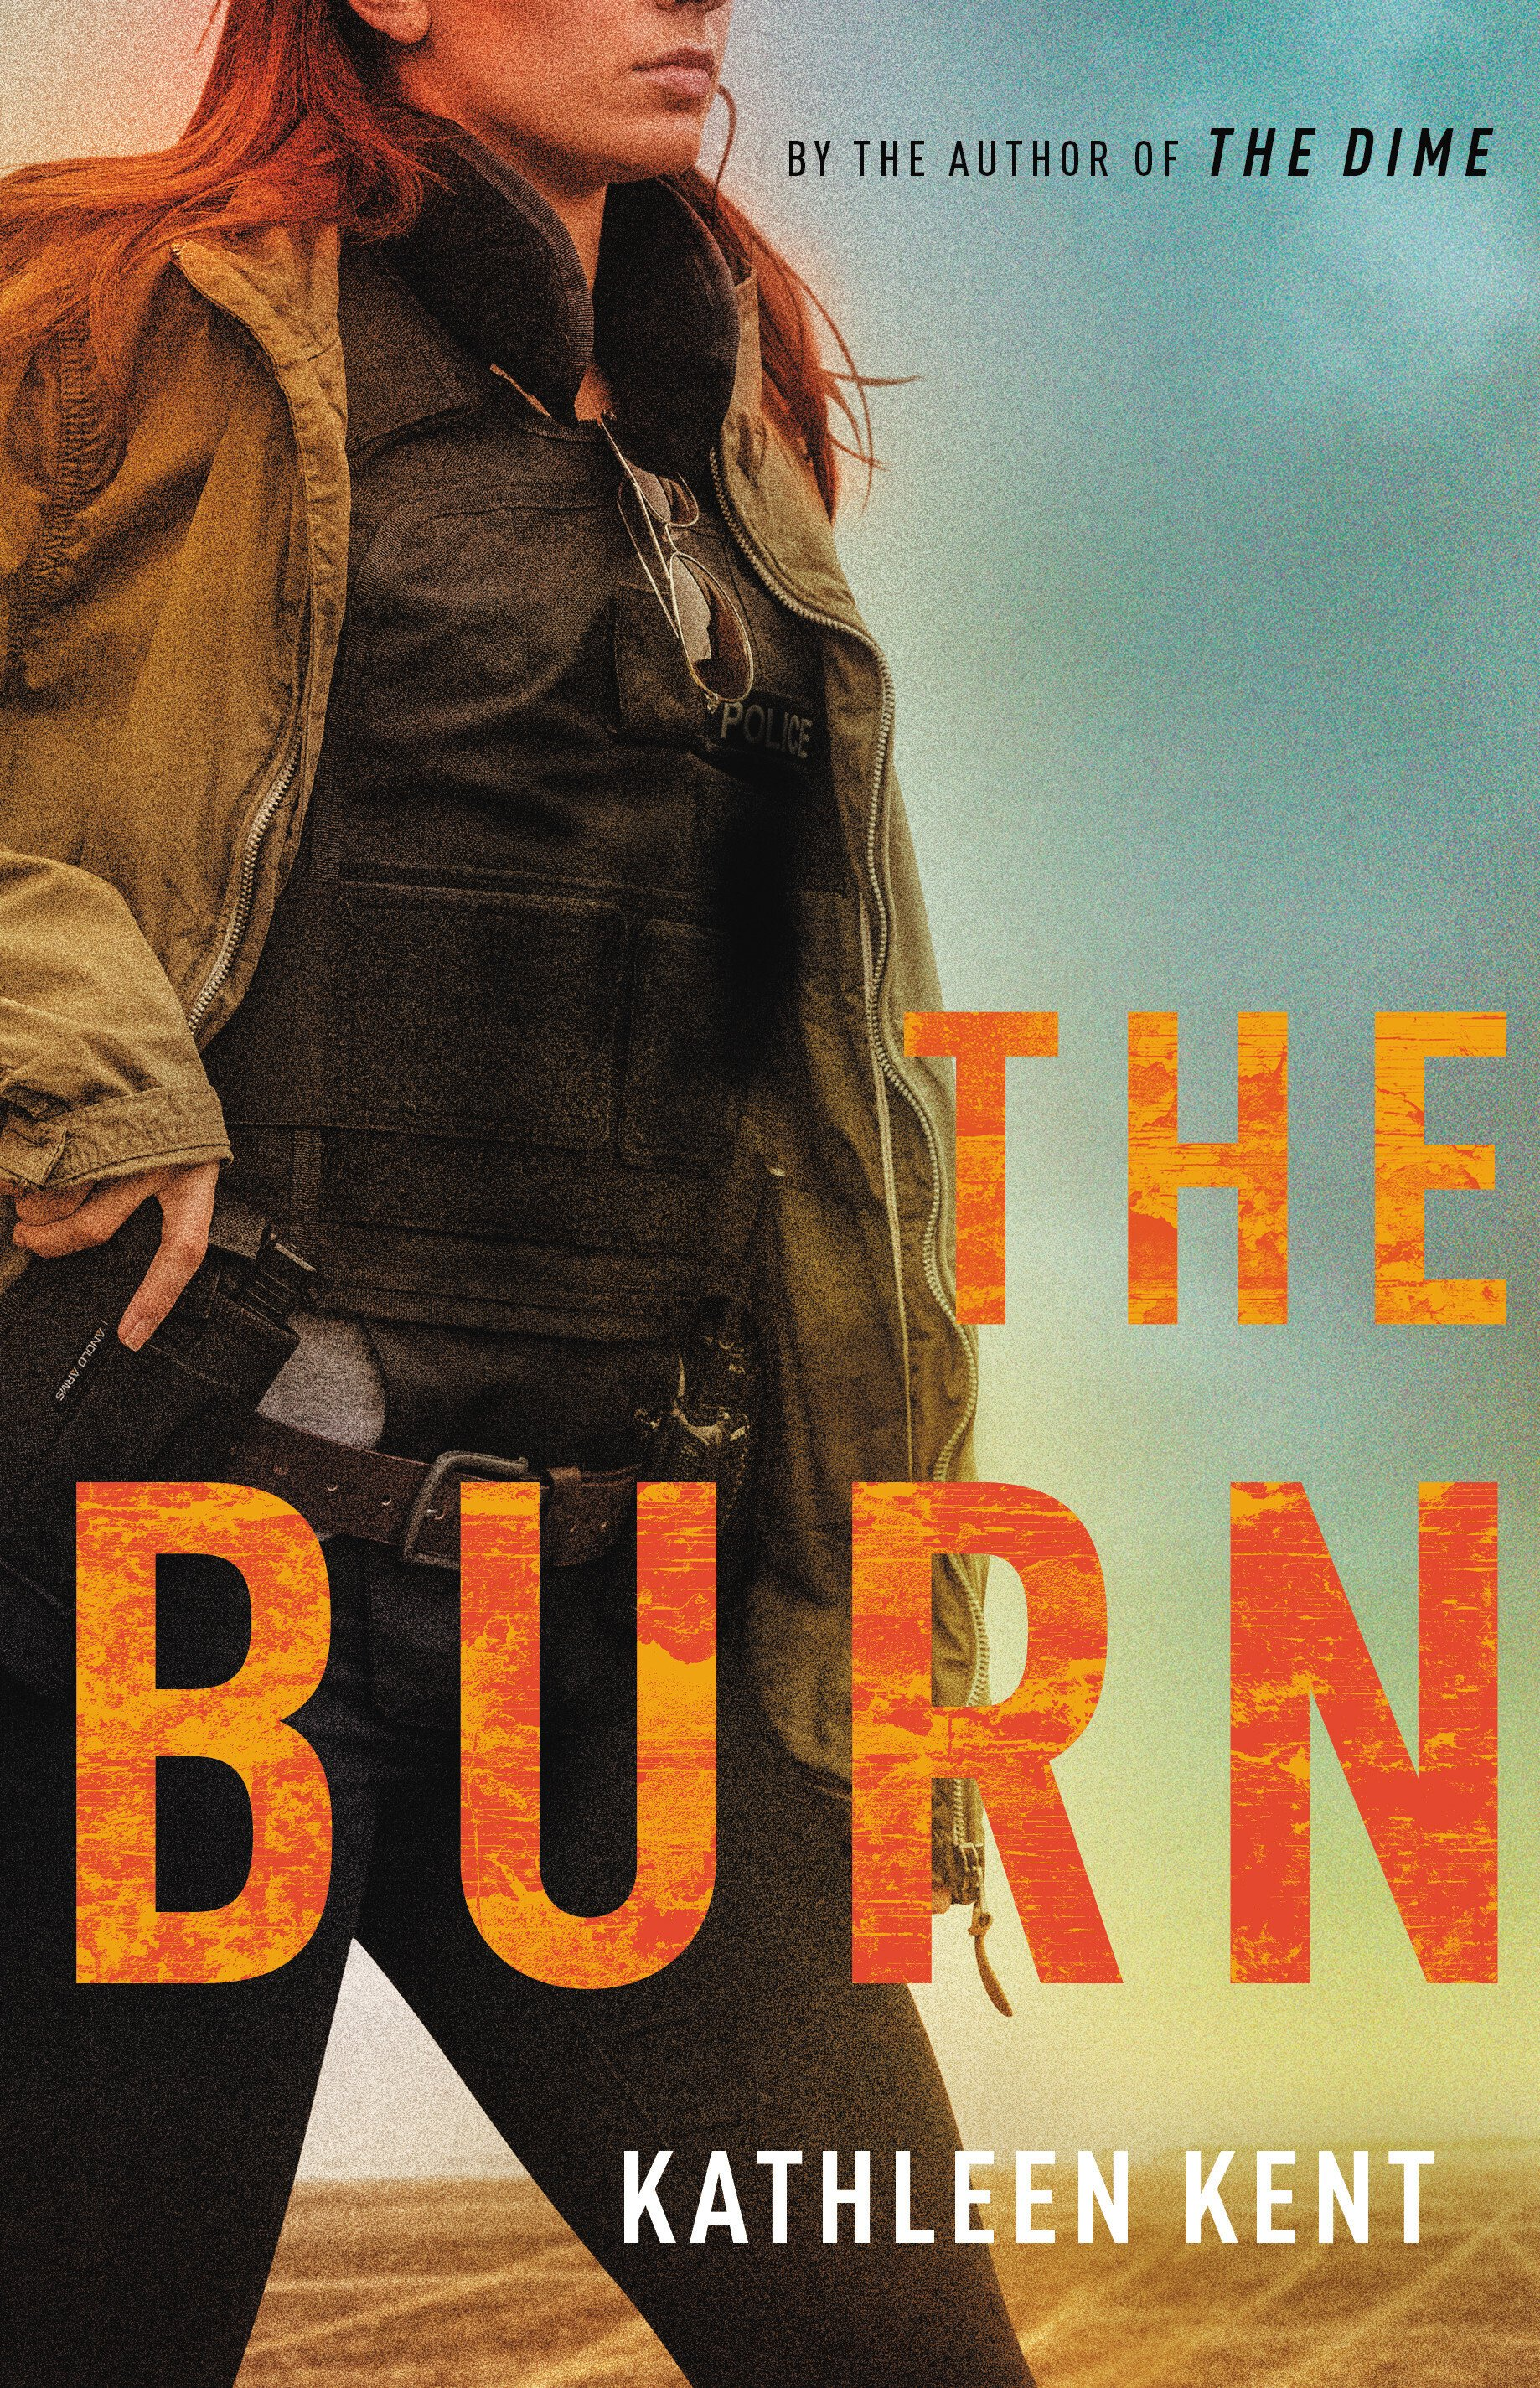 Review: Twists careen throughout Kathleen Kent's `The Burn'